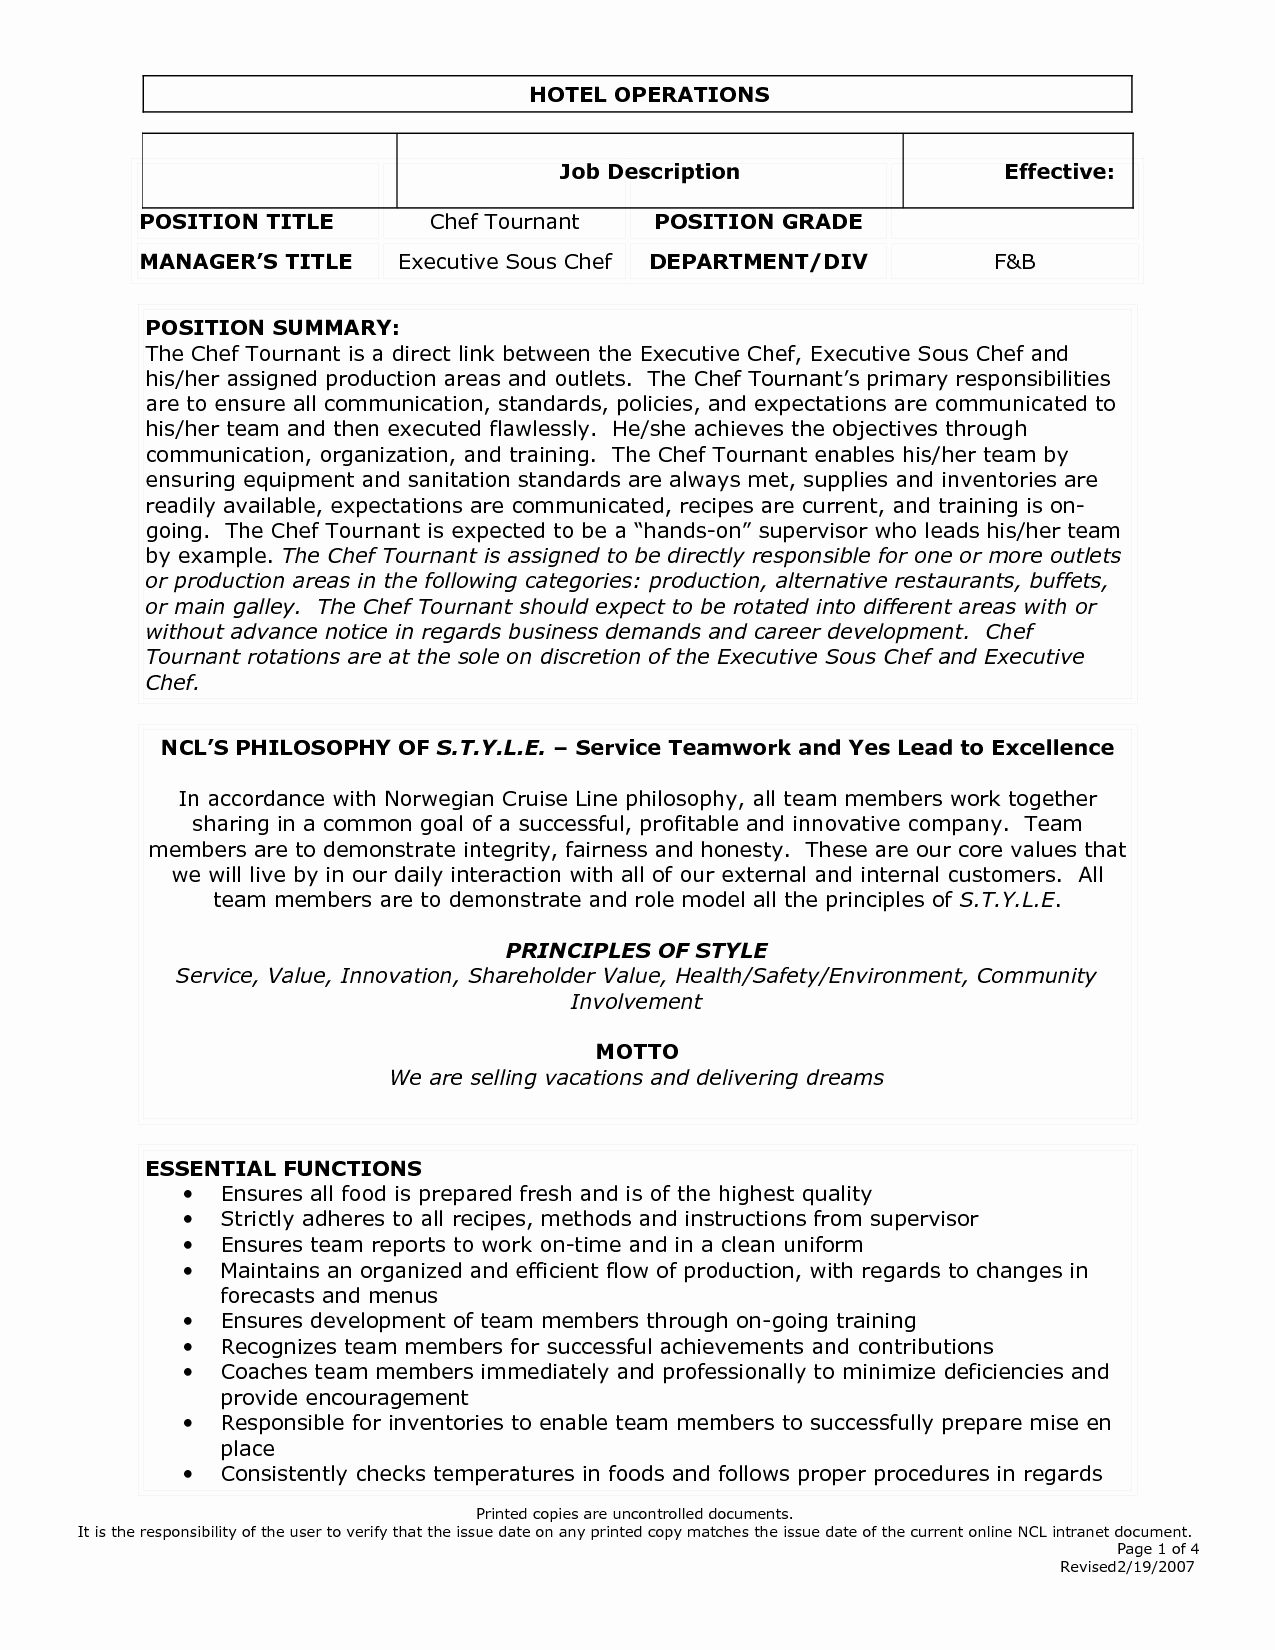 Restaurant Manager Job Description Resume